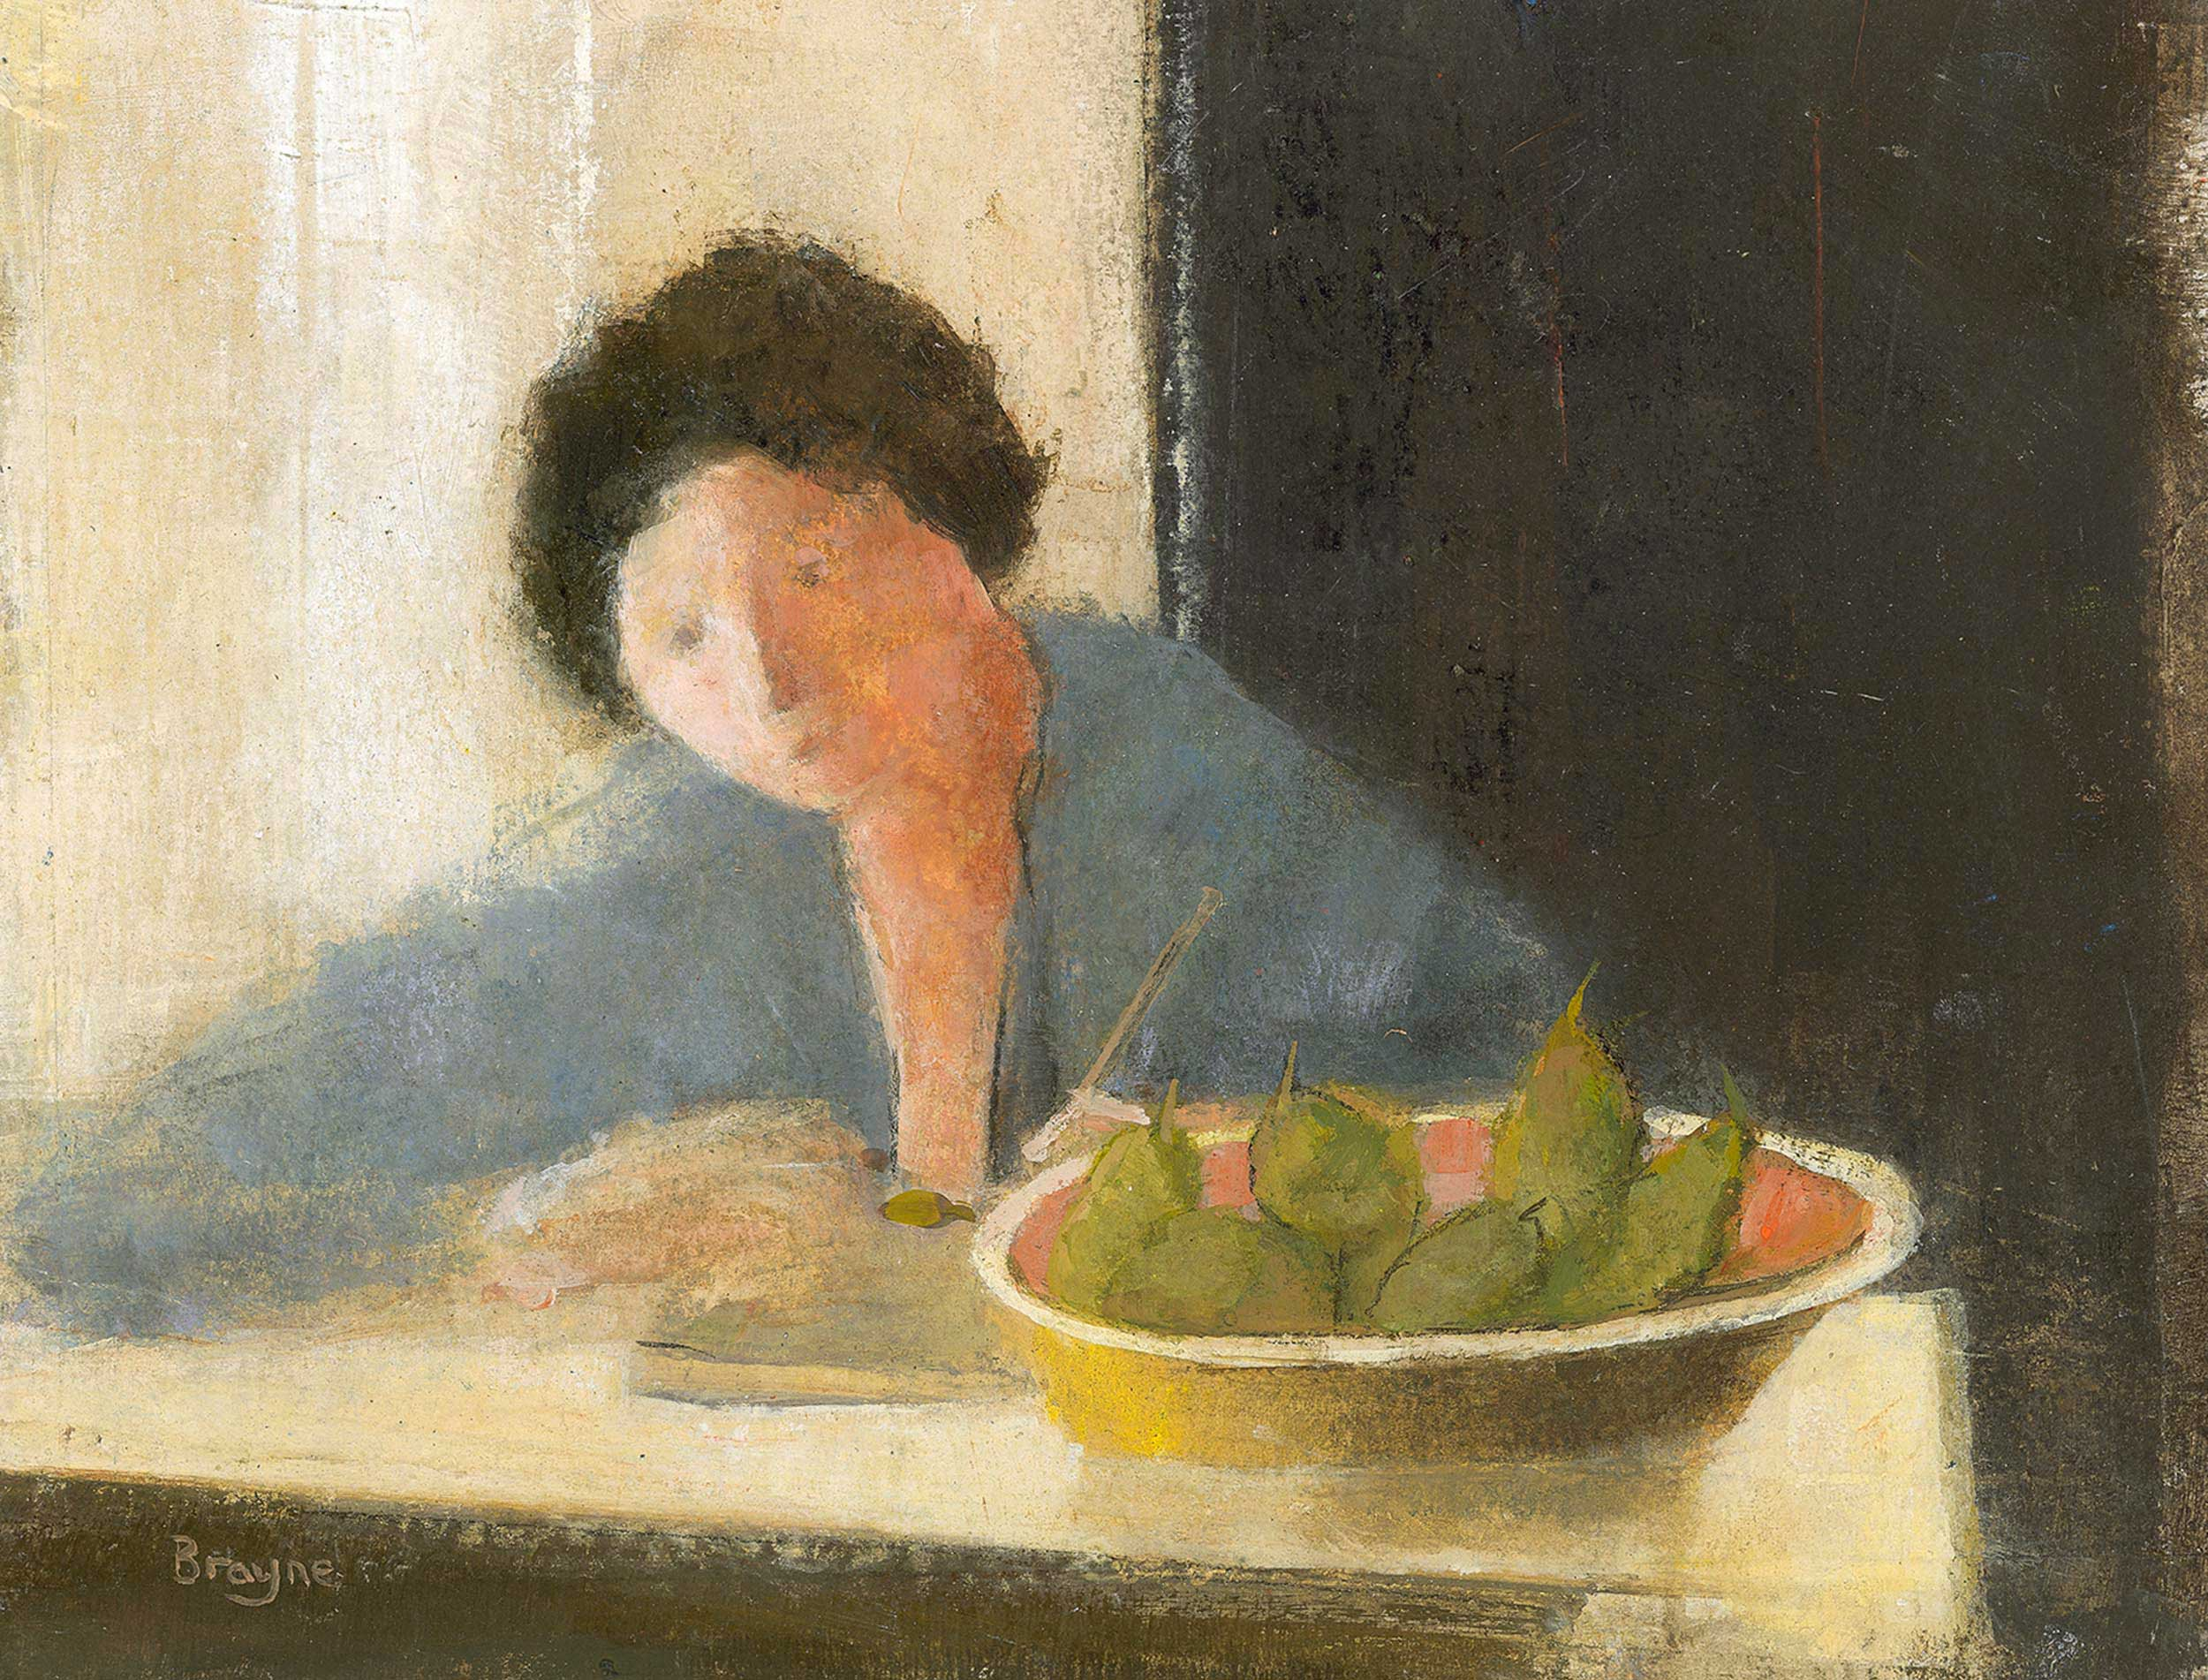 Painting Still Life by David Brayne RWS